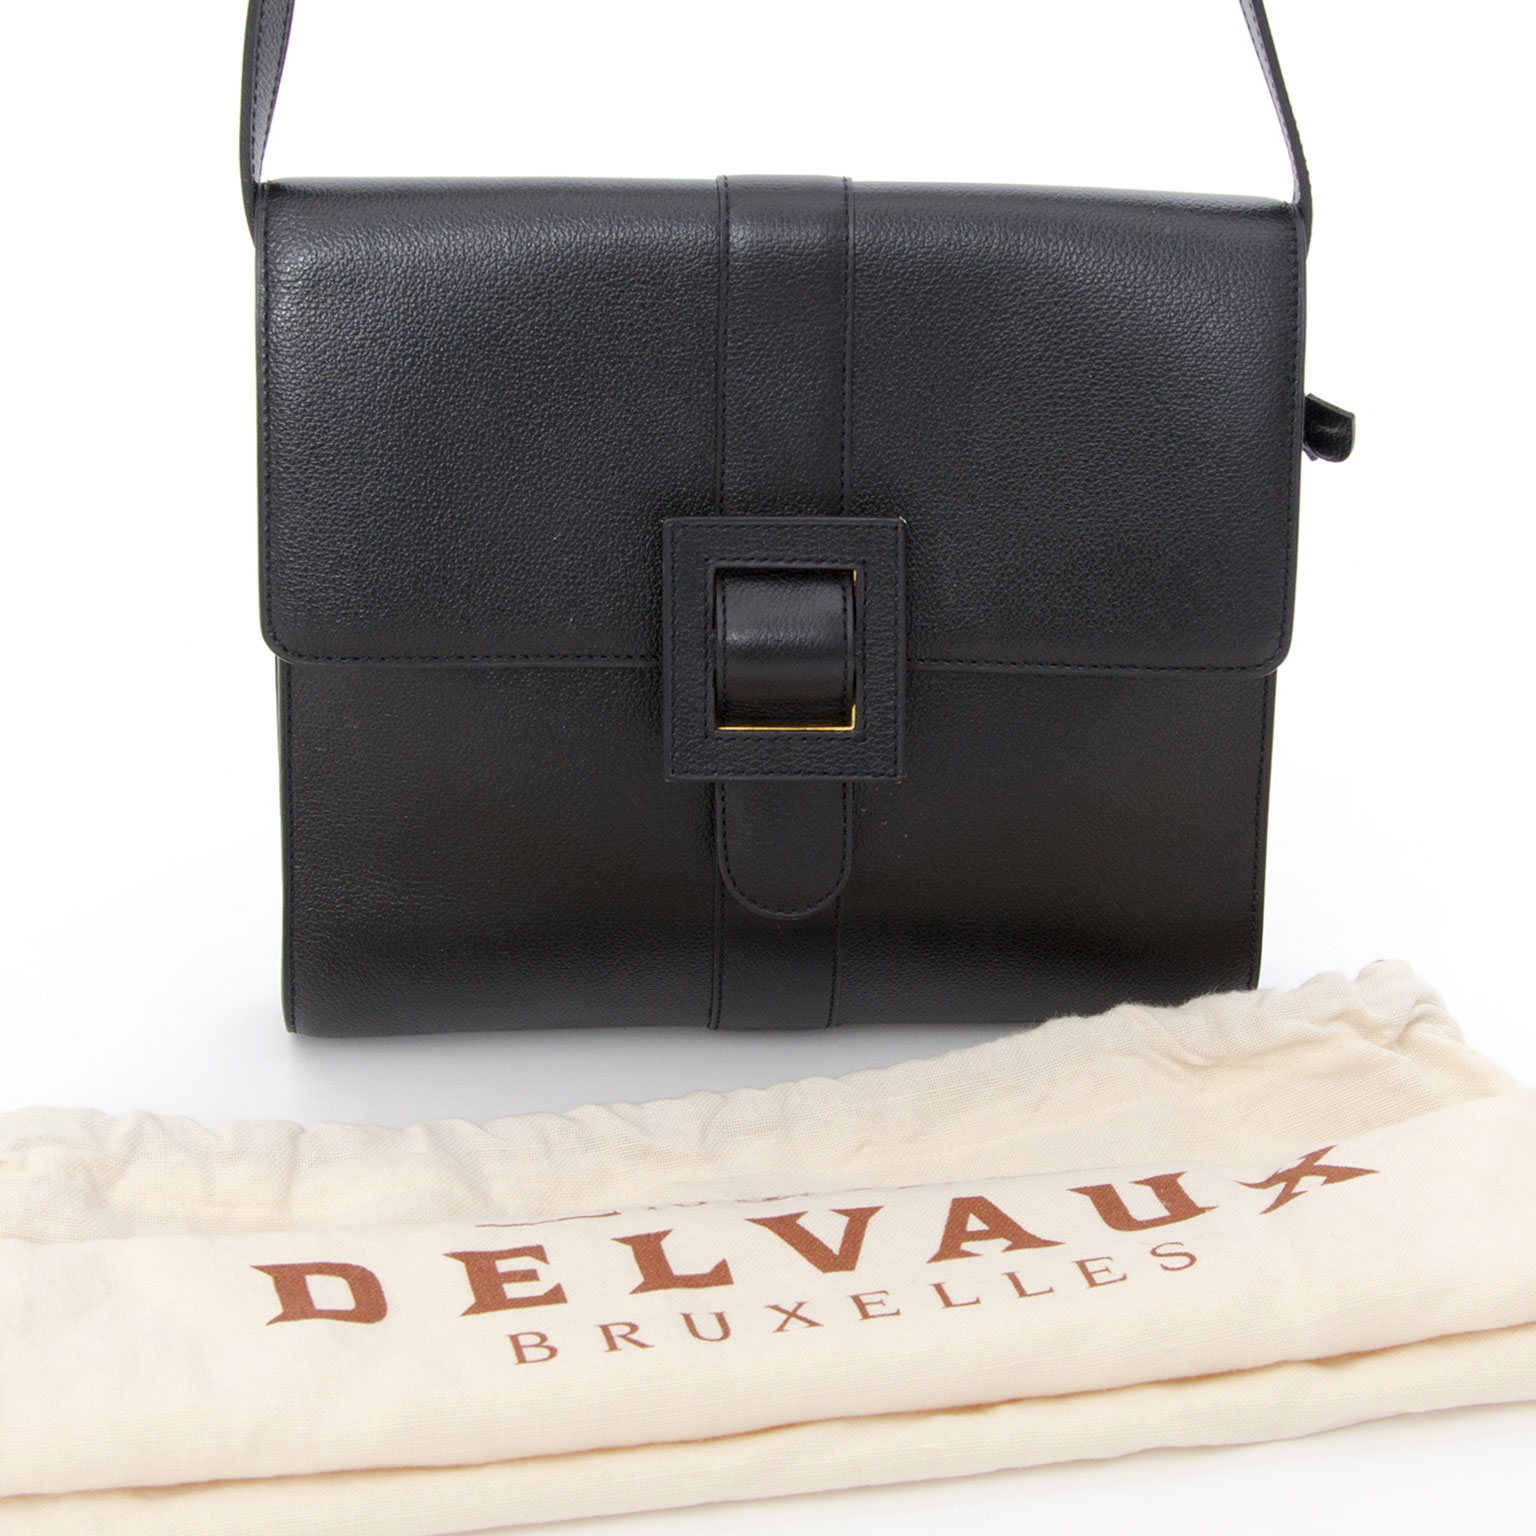 5818fb79690c Koop authentieke tweedehands Delvaux tassen Our Belgian Designers designed  this classic model by Delvaux. This cross body black bag has